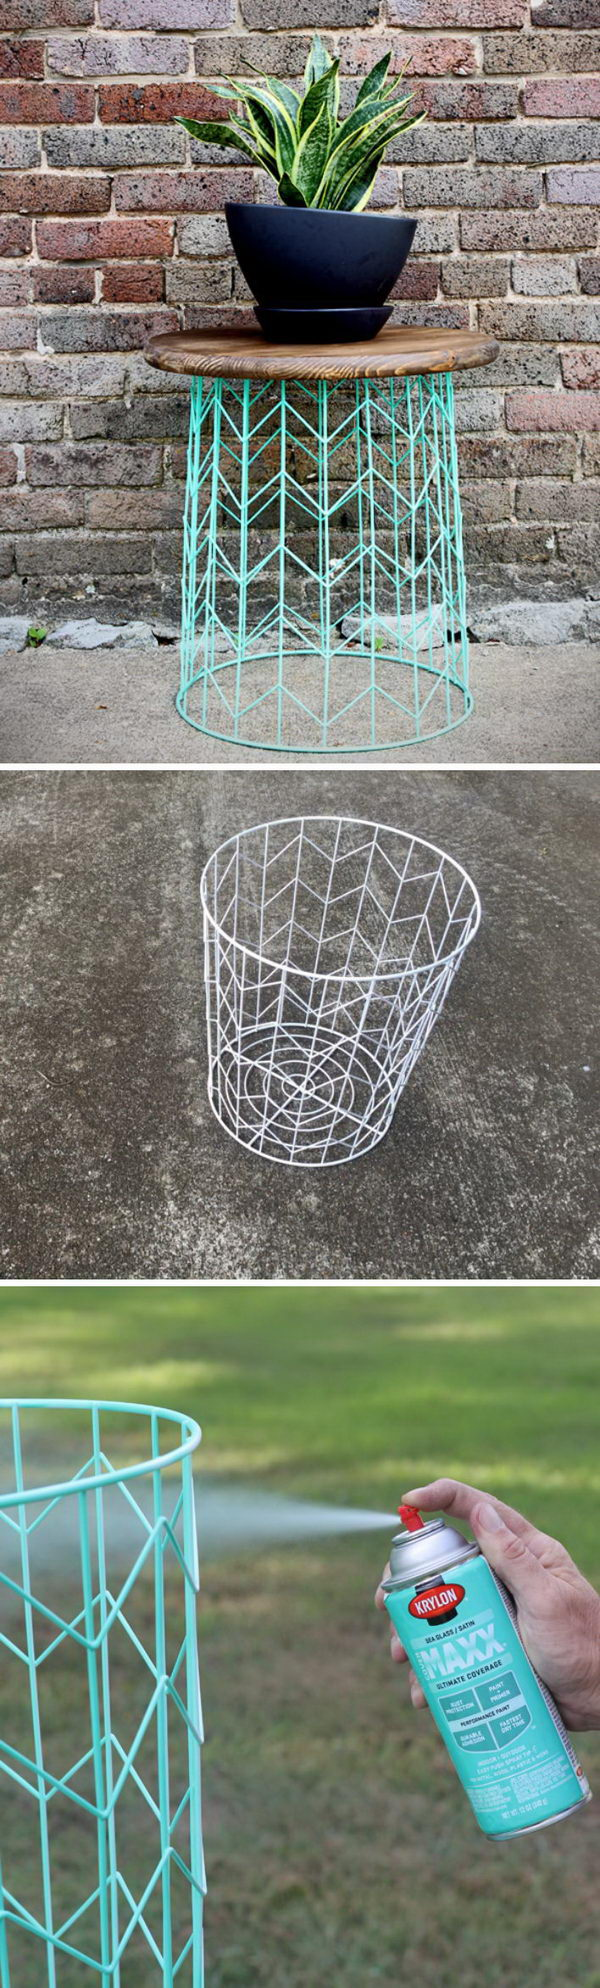 awesome diy side table ideas for outdoors and indoors hative tutorials wire basket accent outdoor porch vintage white rugs antique drop metal lamp bulb wooden bedside cabinets